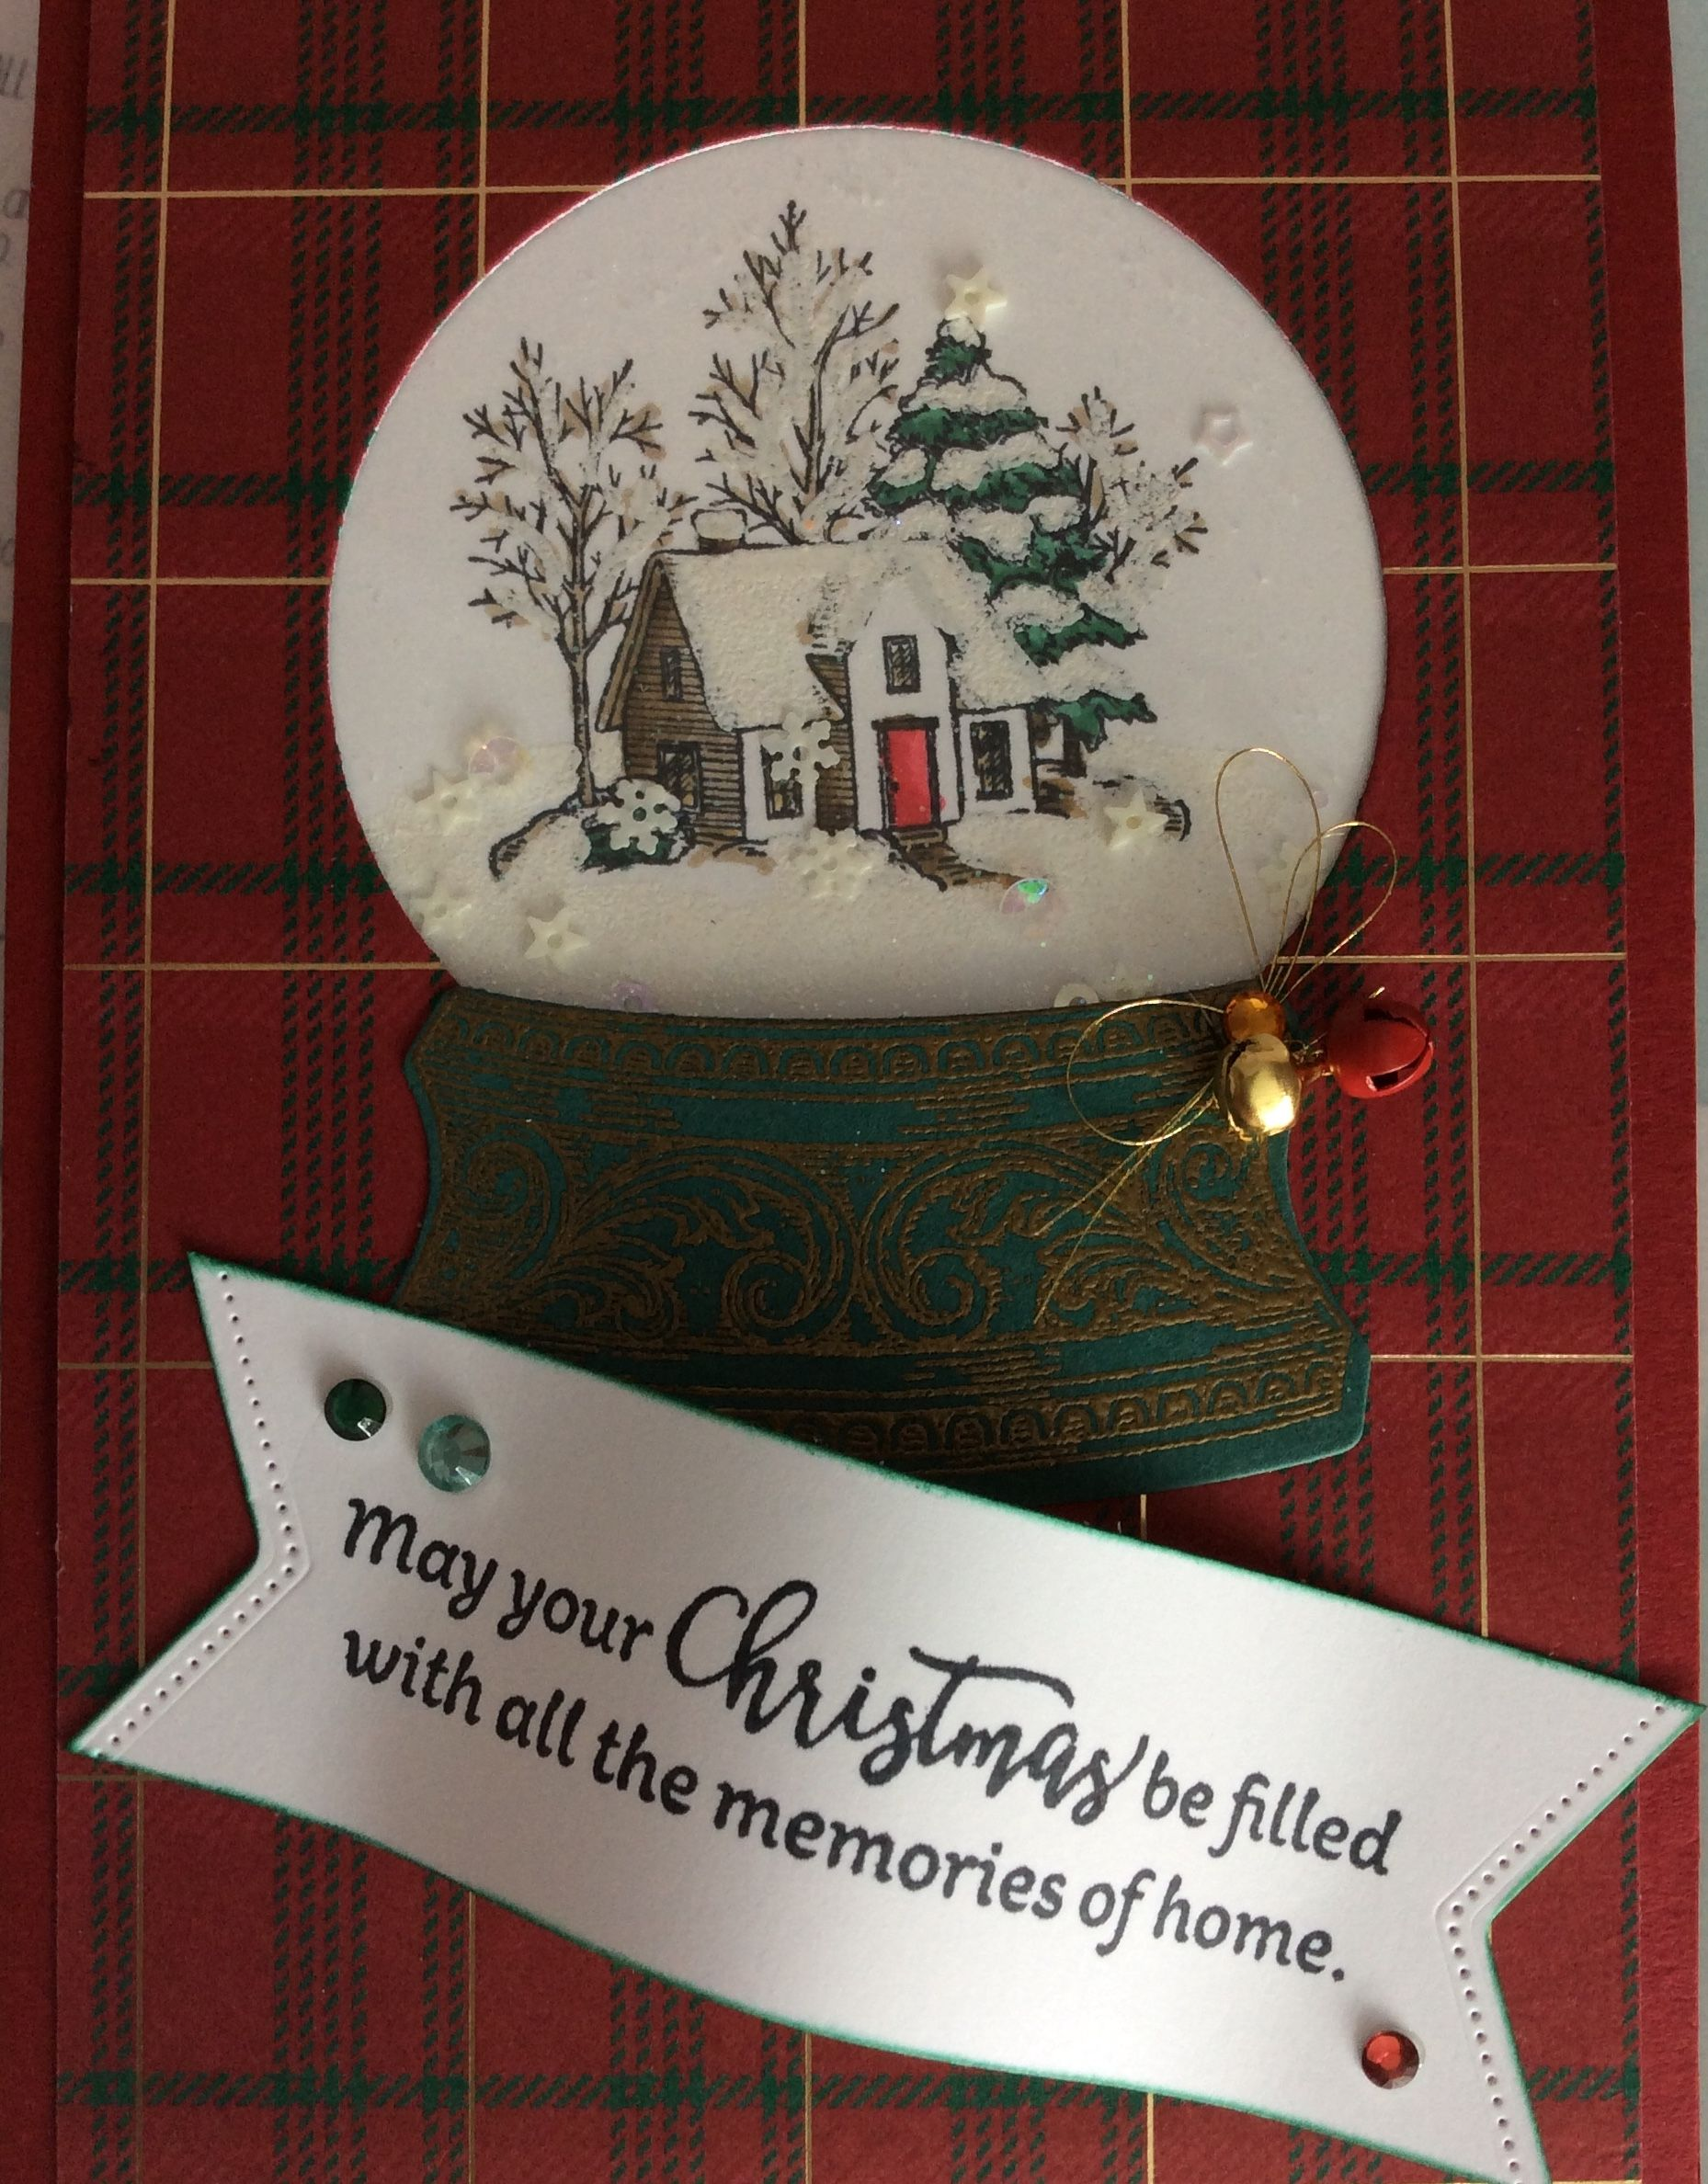 2019 White House Christmas Card.Used A Versa Mark Pen To Add White Heat Embossing Powder To